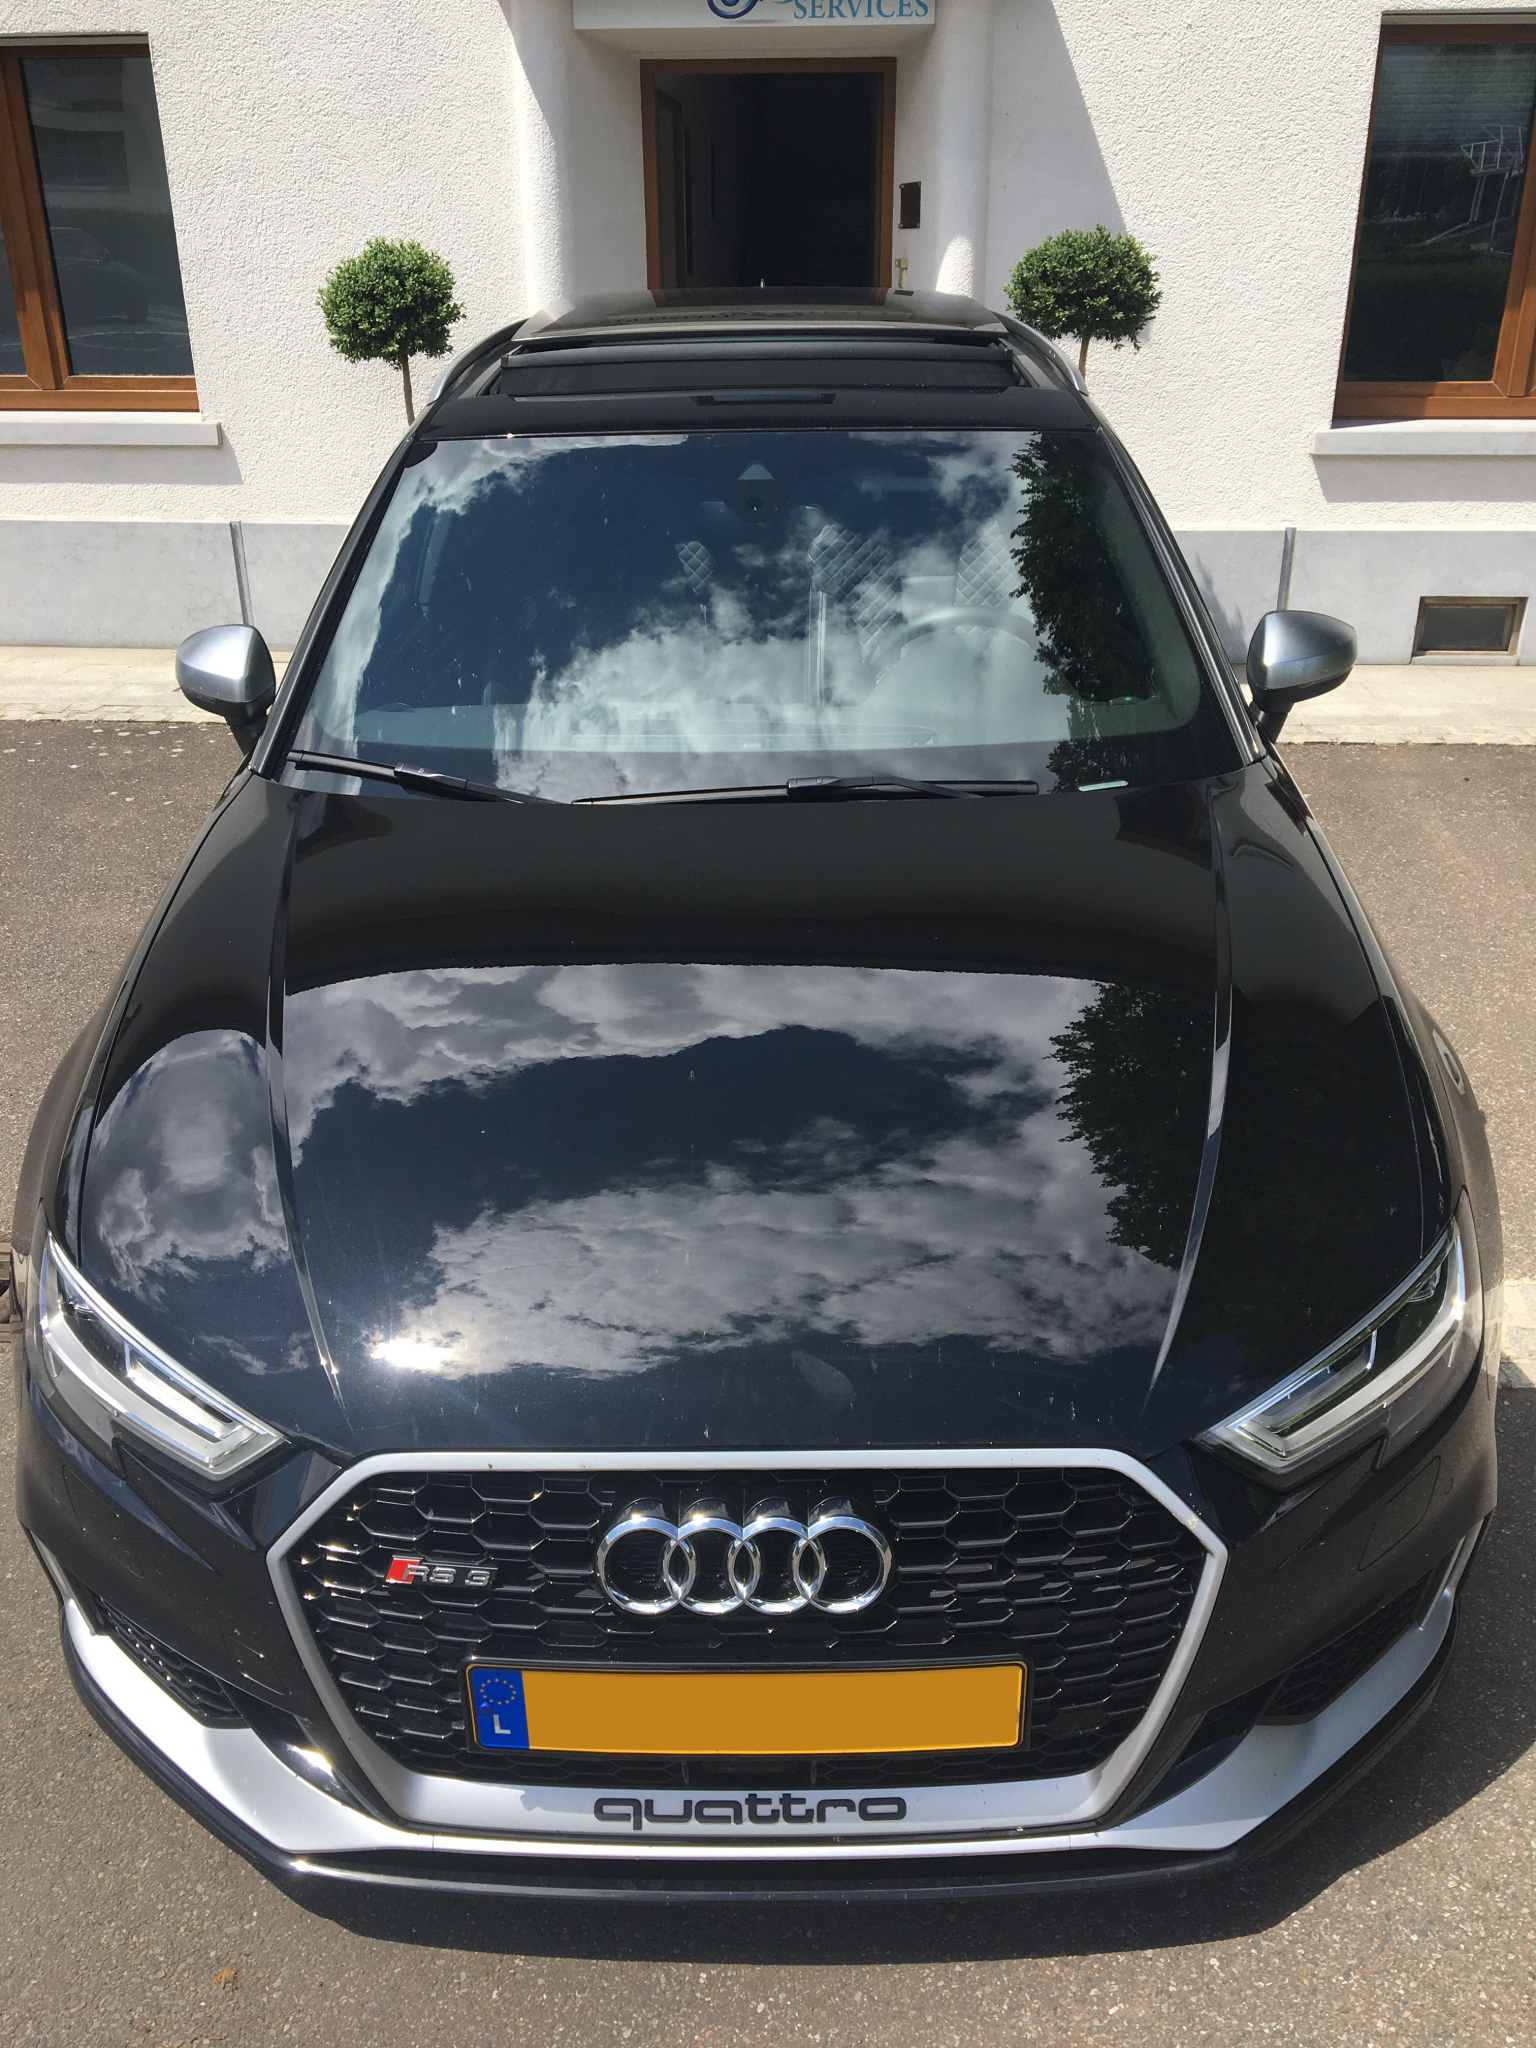 Luxembourg Location Audi Ultimate Services